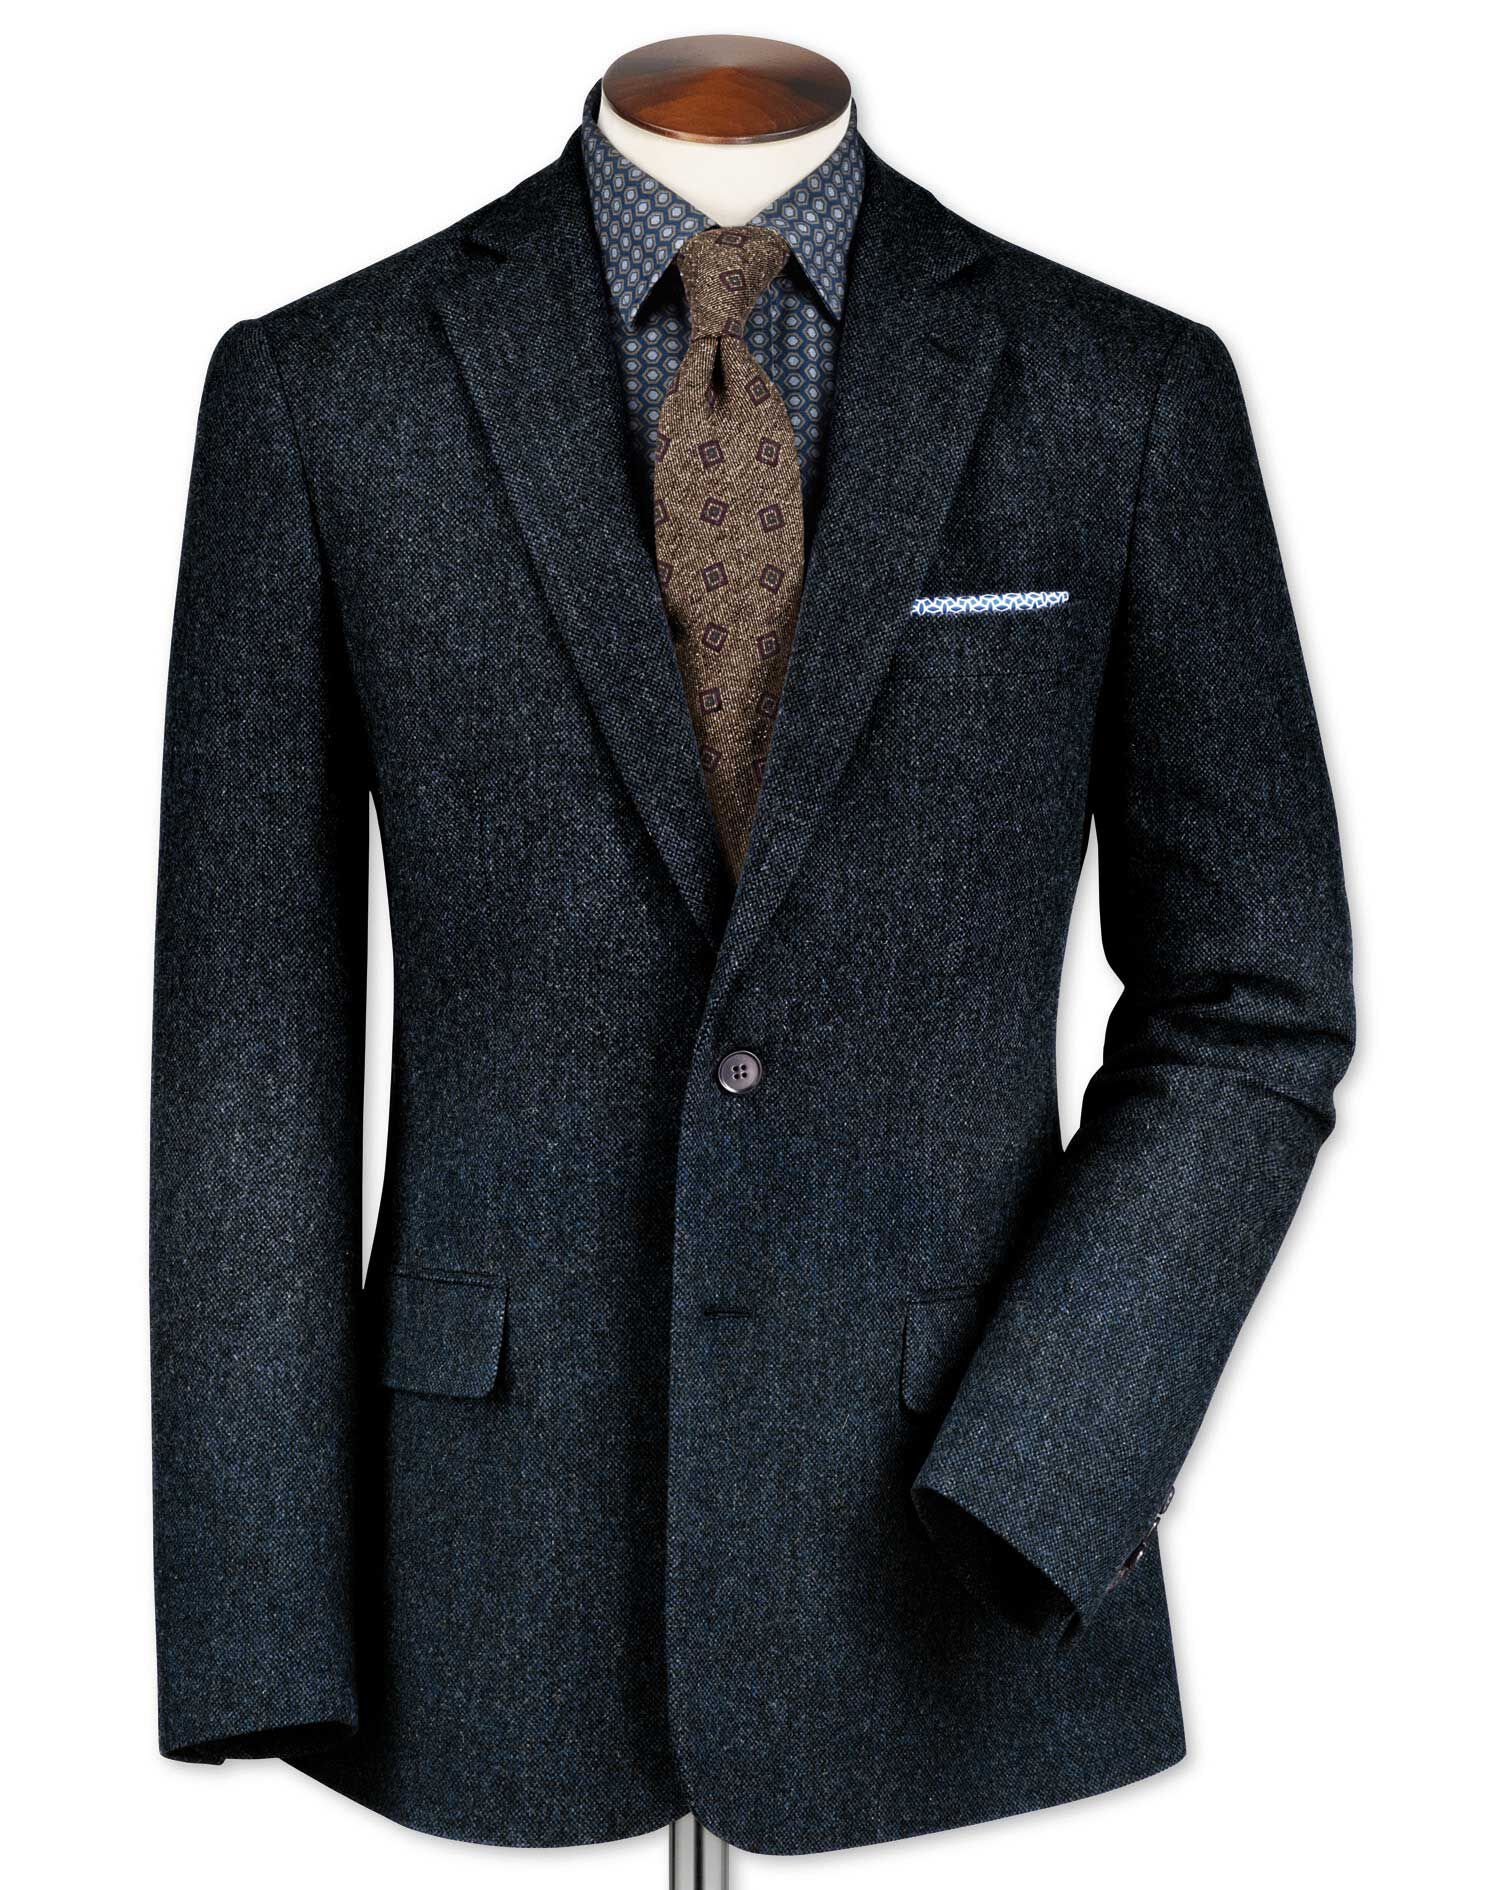 Classic Fit Blue Lambswool Hopsack Wool Jacket Size 38 Long by Charles Tyrwhitt